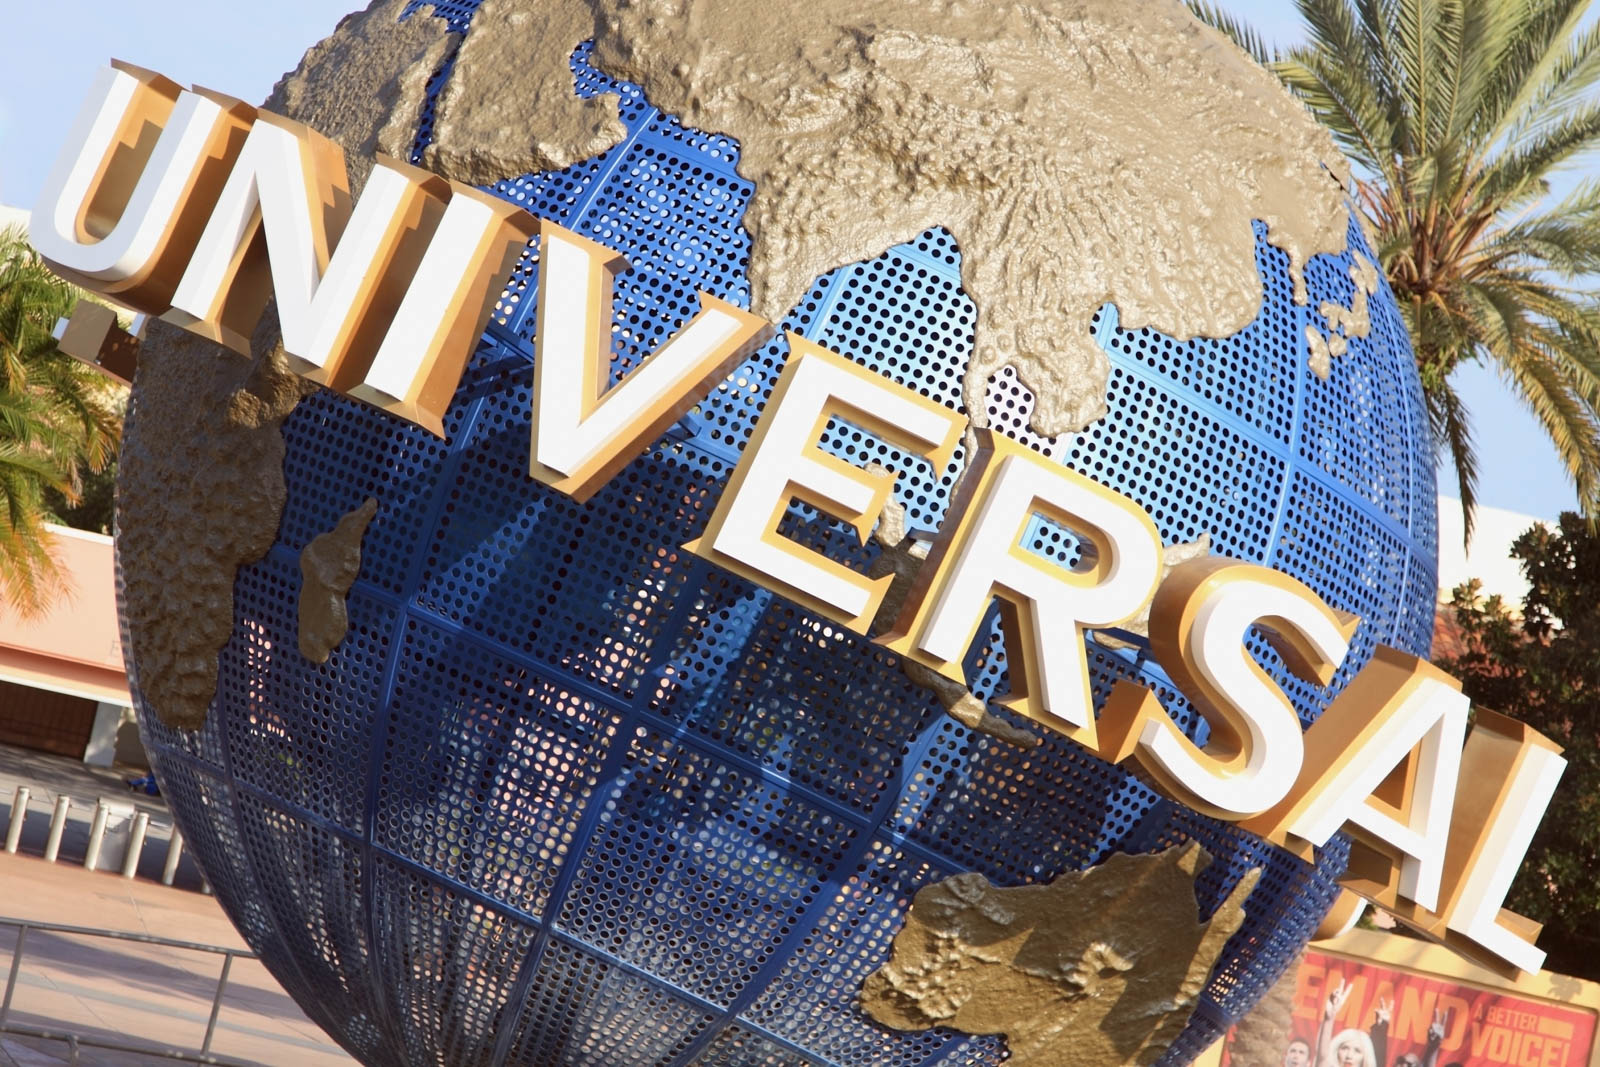 Universal Studio is one of the famous parks in Orlando. It is among the best things to do in Orlando and best places to go in Florida.